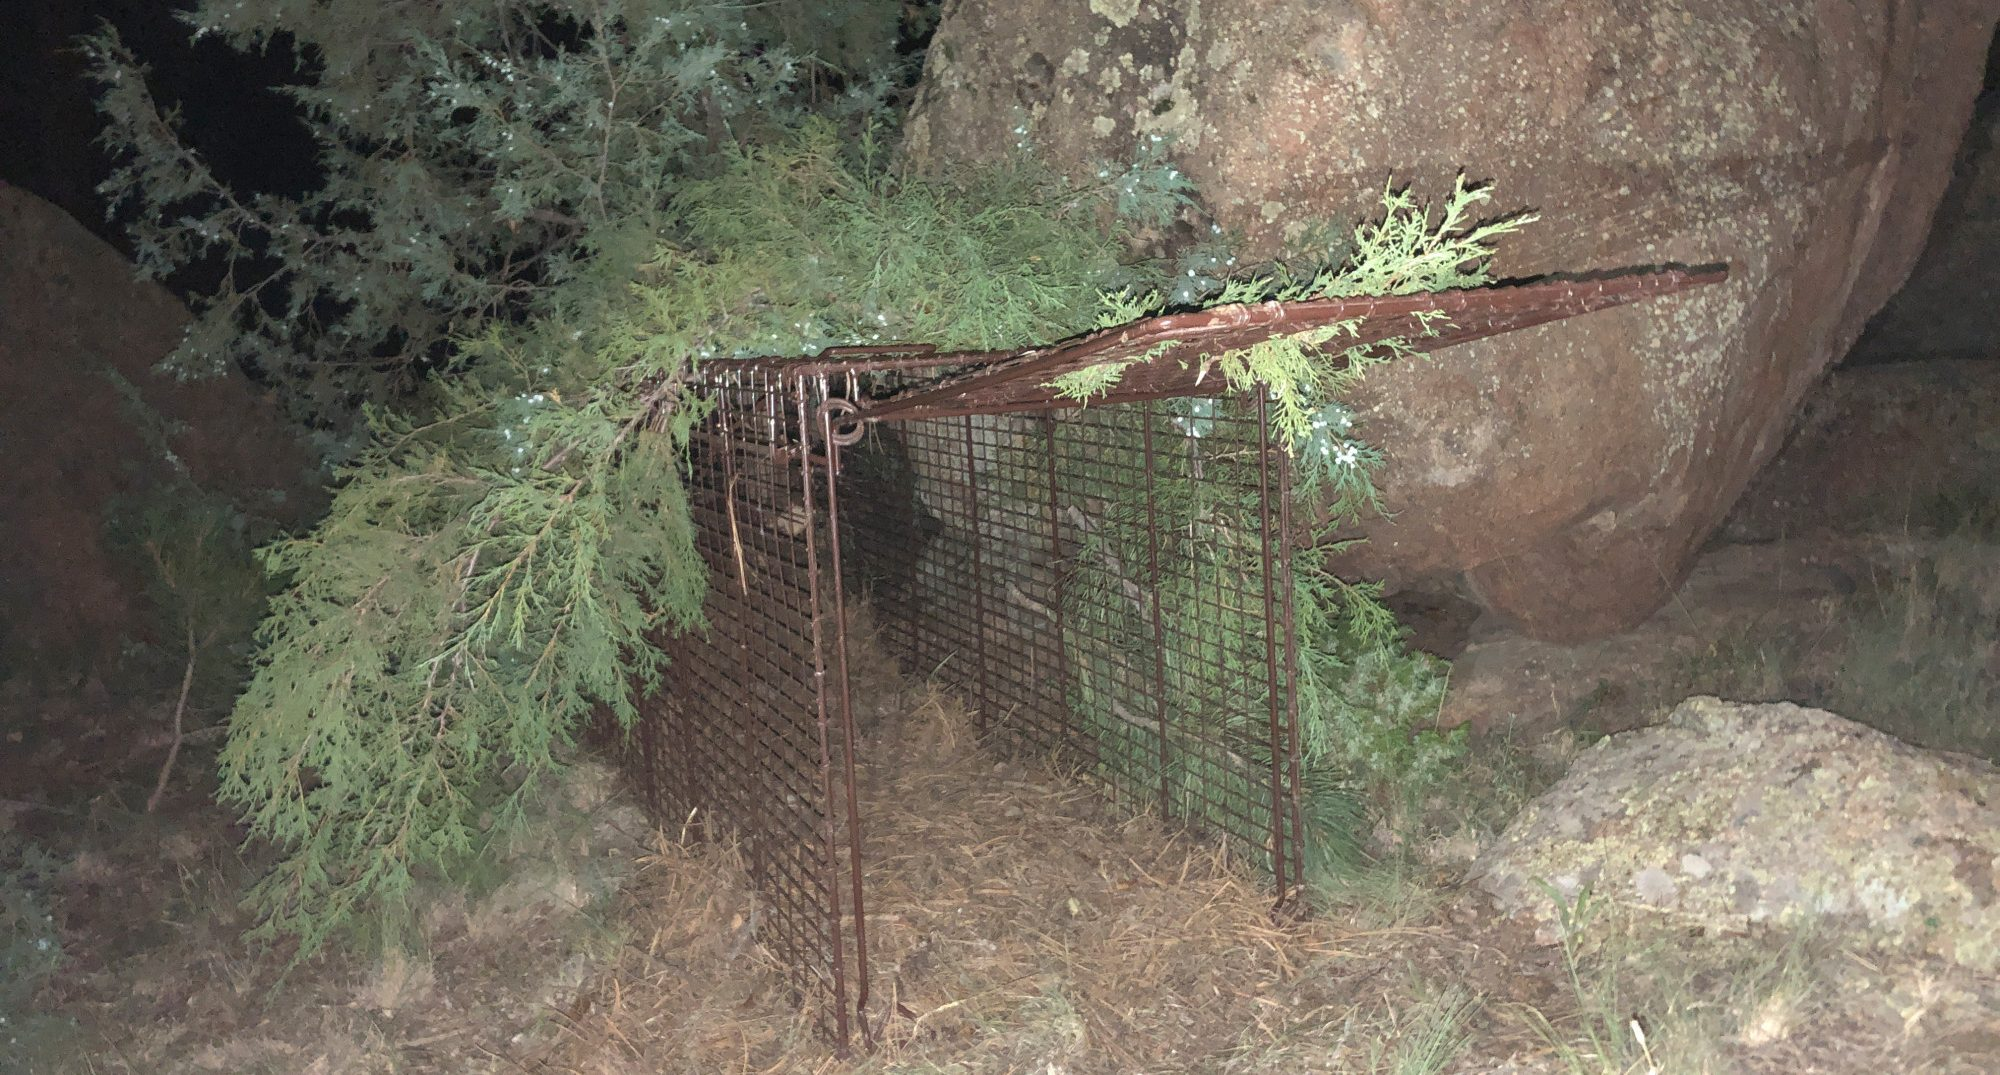 Wildlife officers set a trap